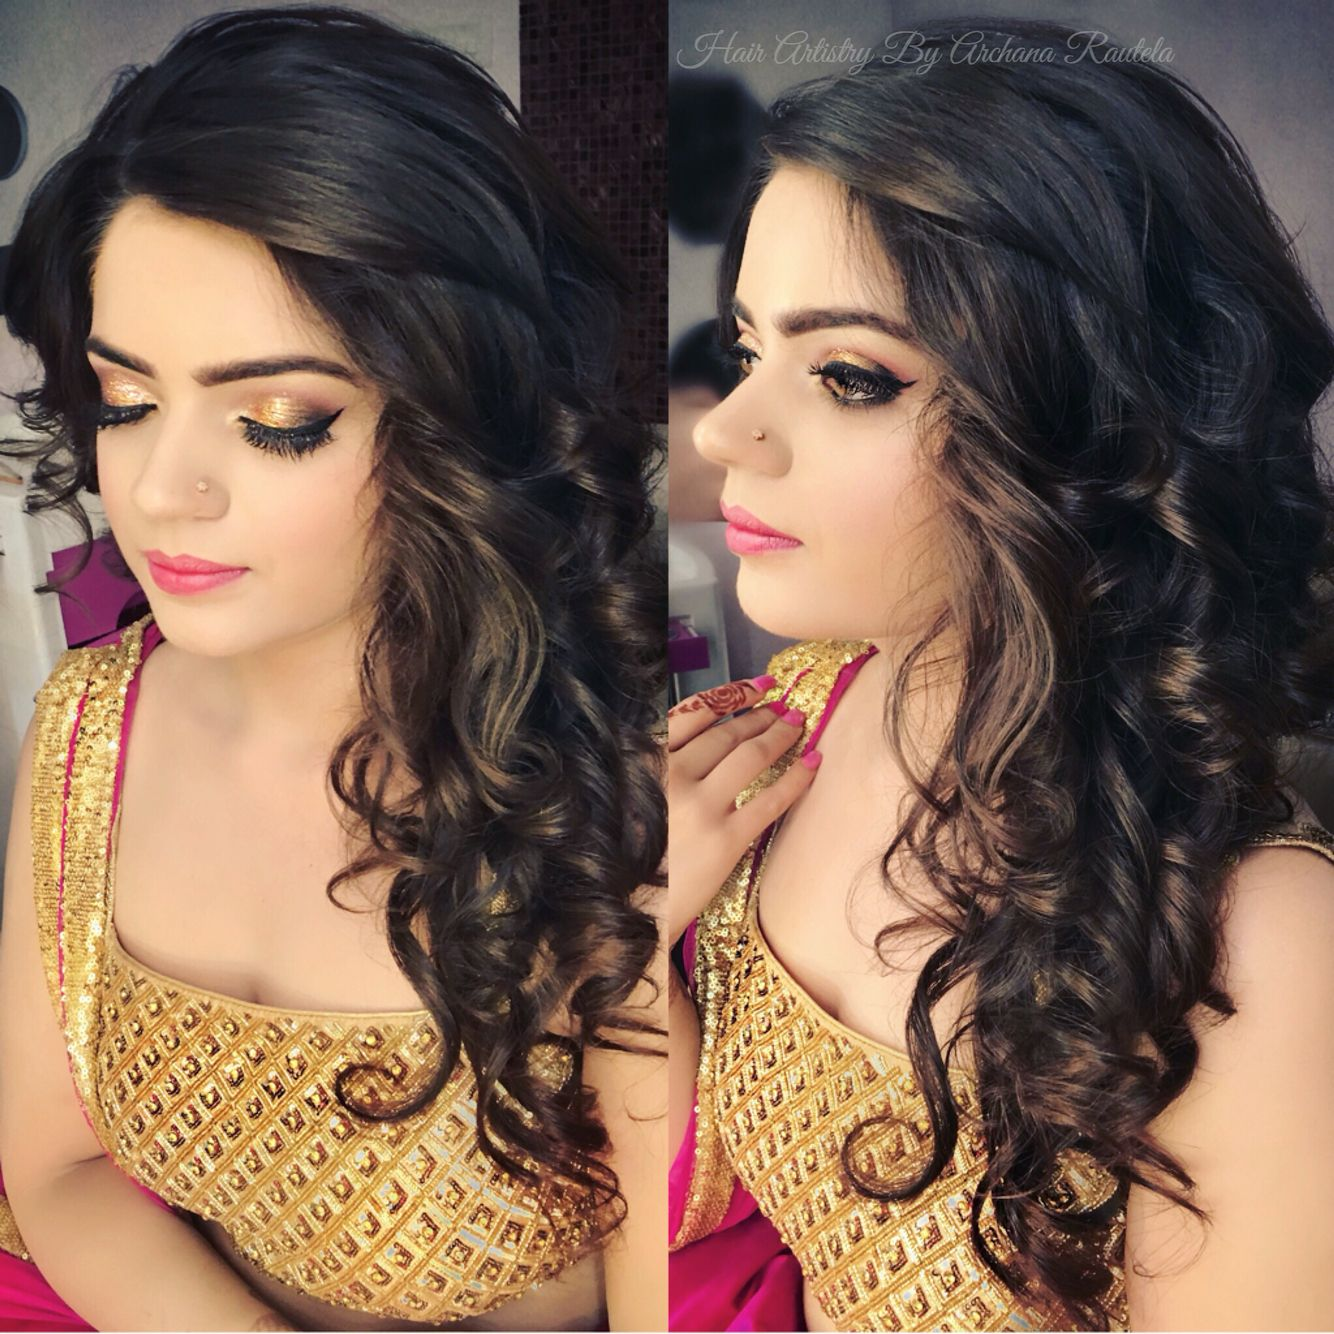 Curls For Girls Indian Party Look Hair Artistry By Archana Rautela Curls For The Girls Beautiful Curls Curls